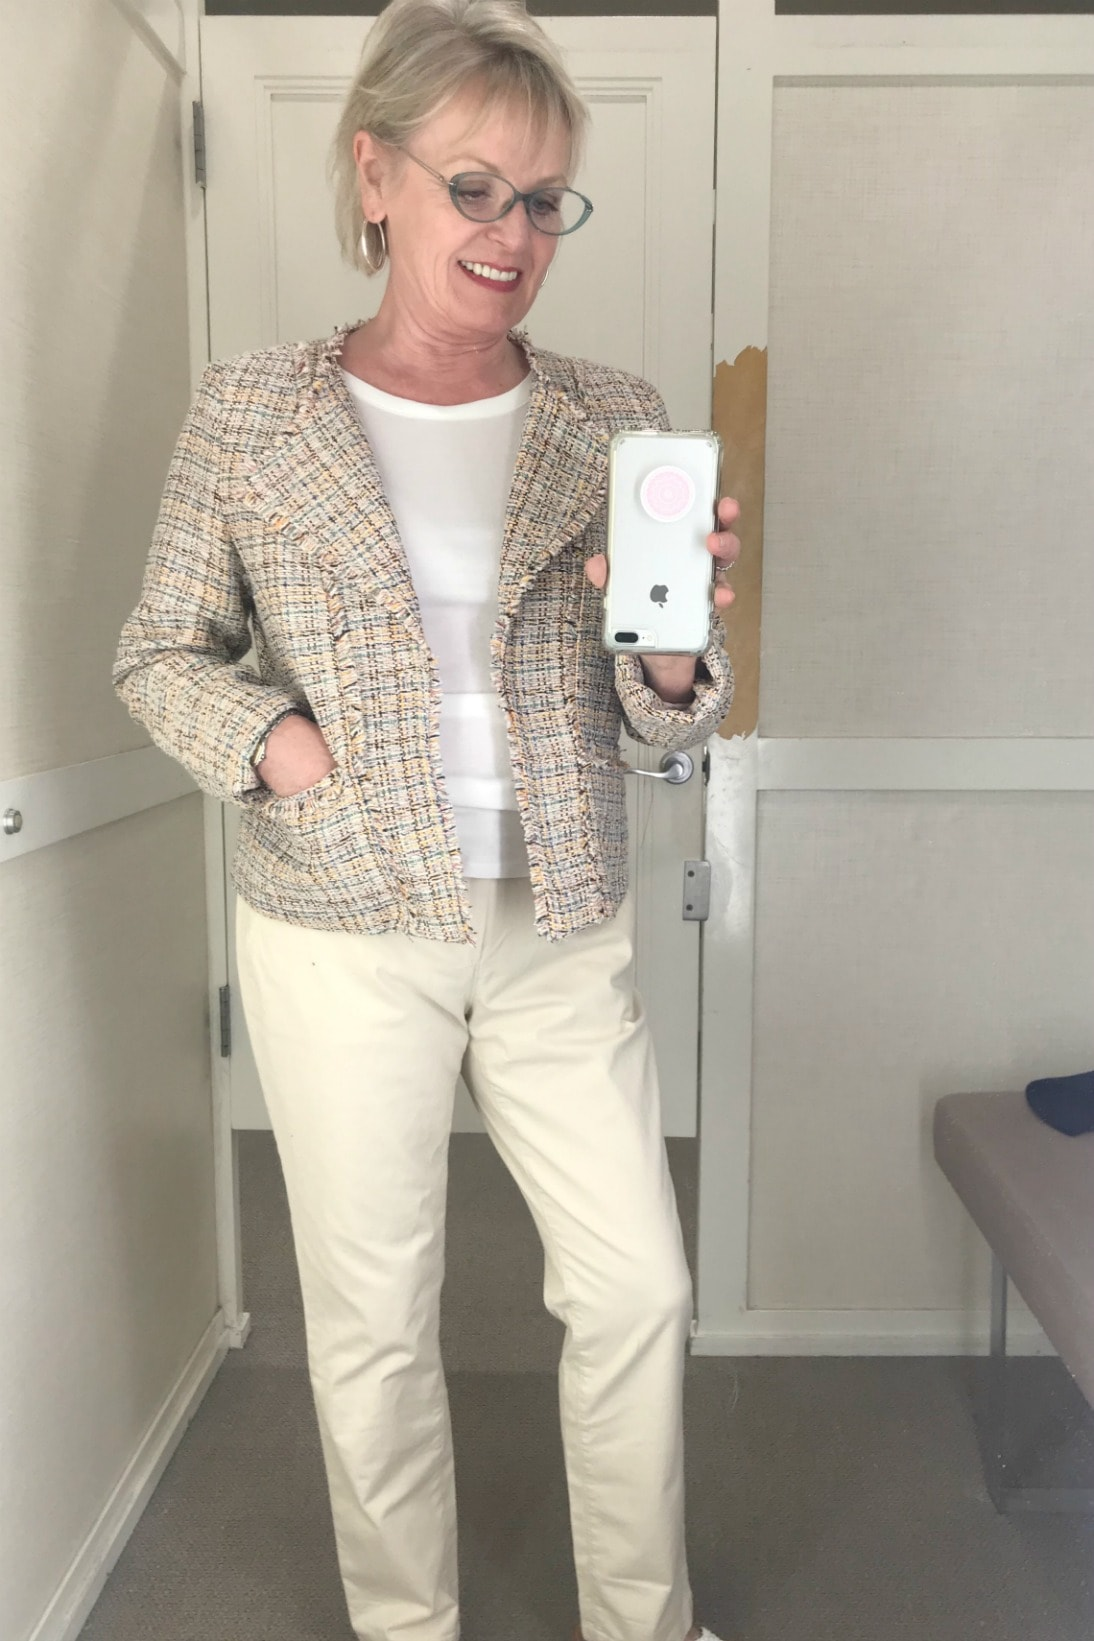 Jennifer of A Well Styled Life wearing beige tweed jacket and beige chino's from Loft on A Well Styled Life